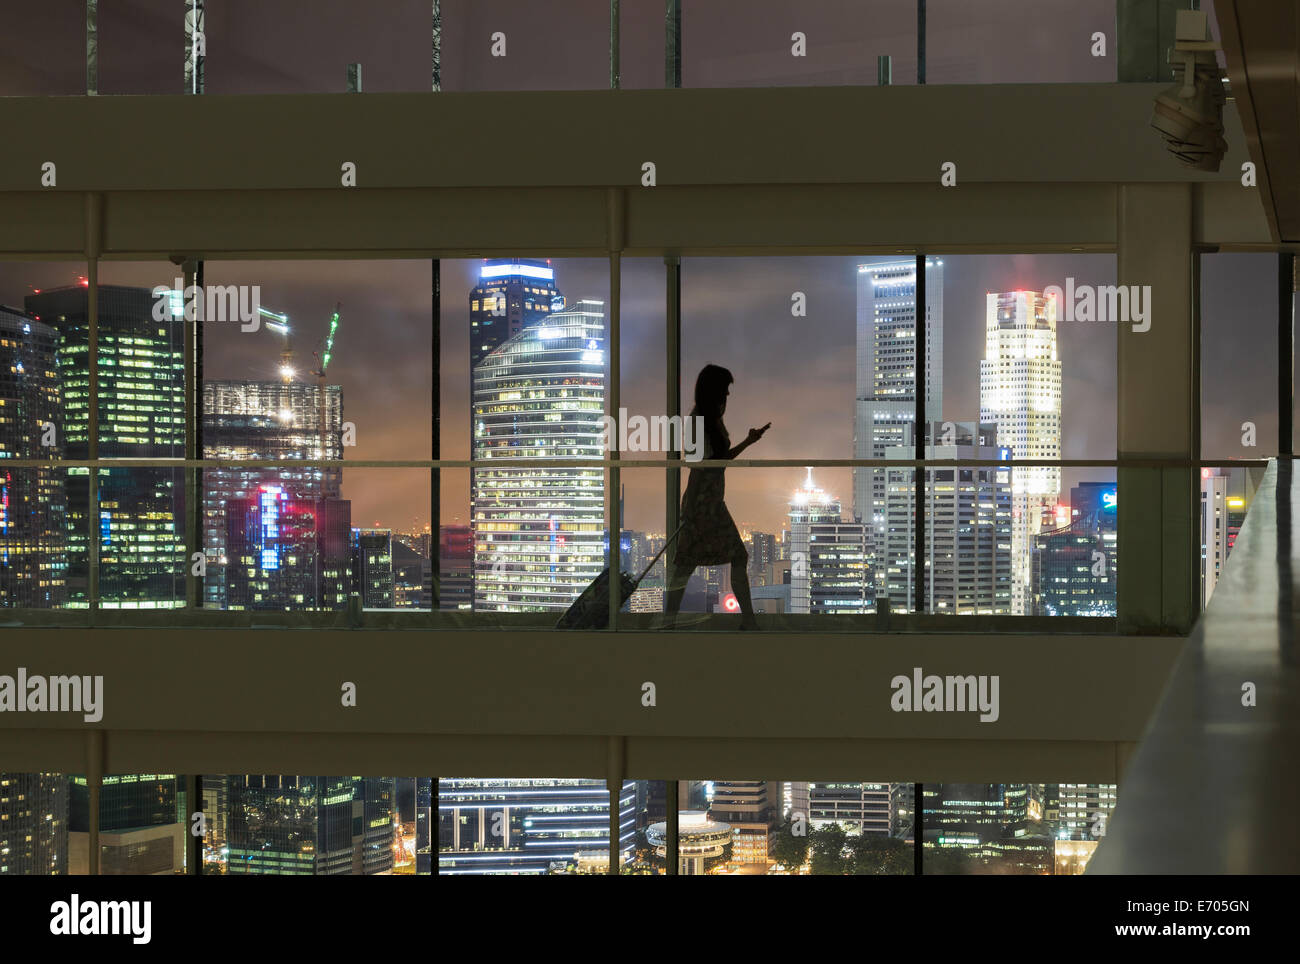 Young woman using smartphone and pulling suitcase, city skyline in view - Stock Image